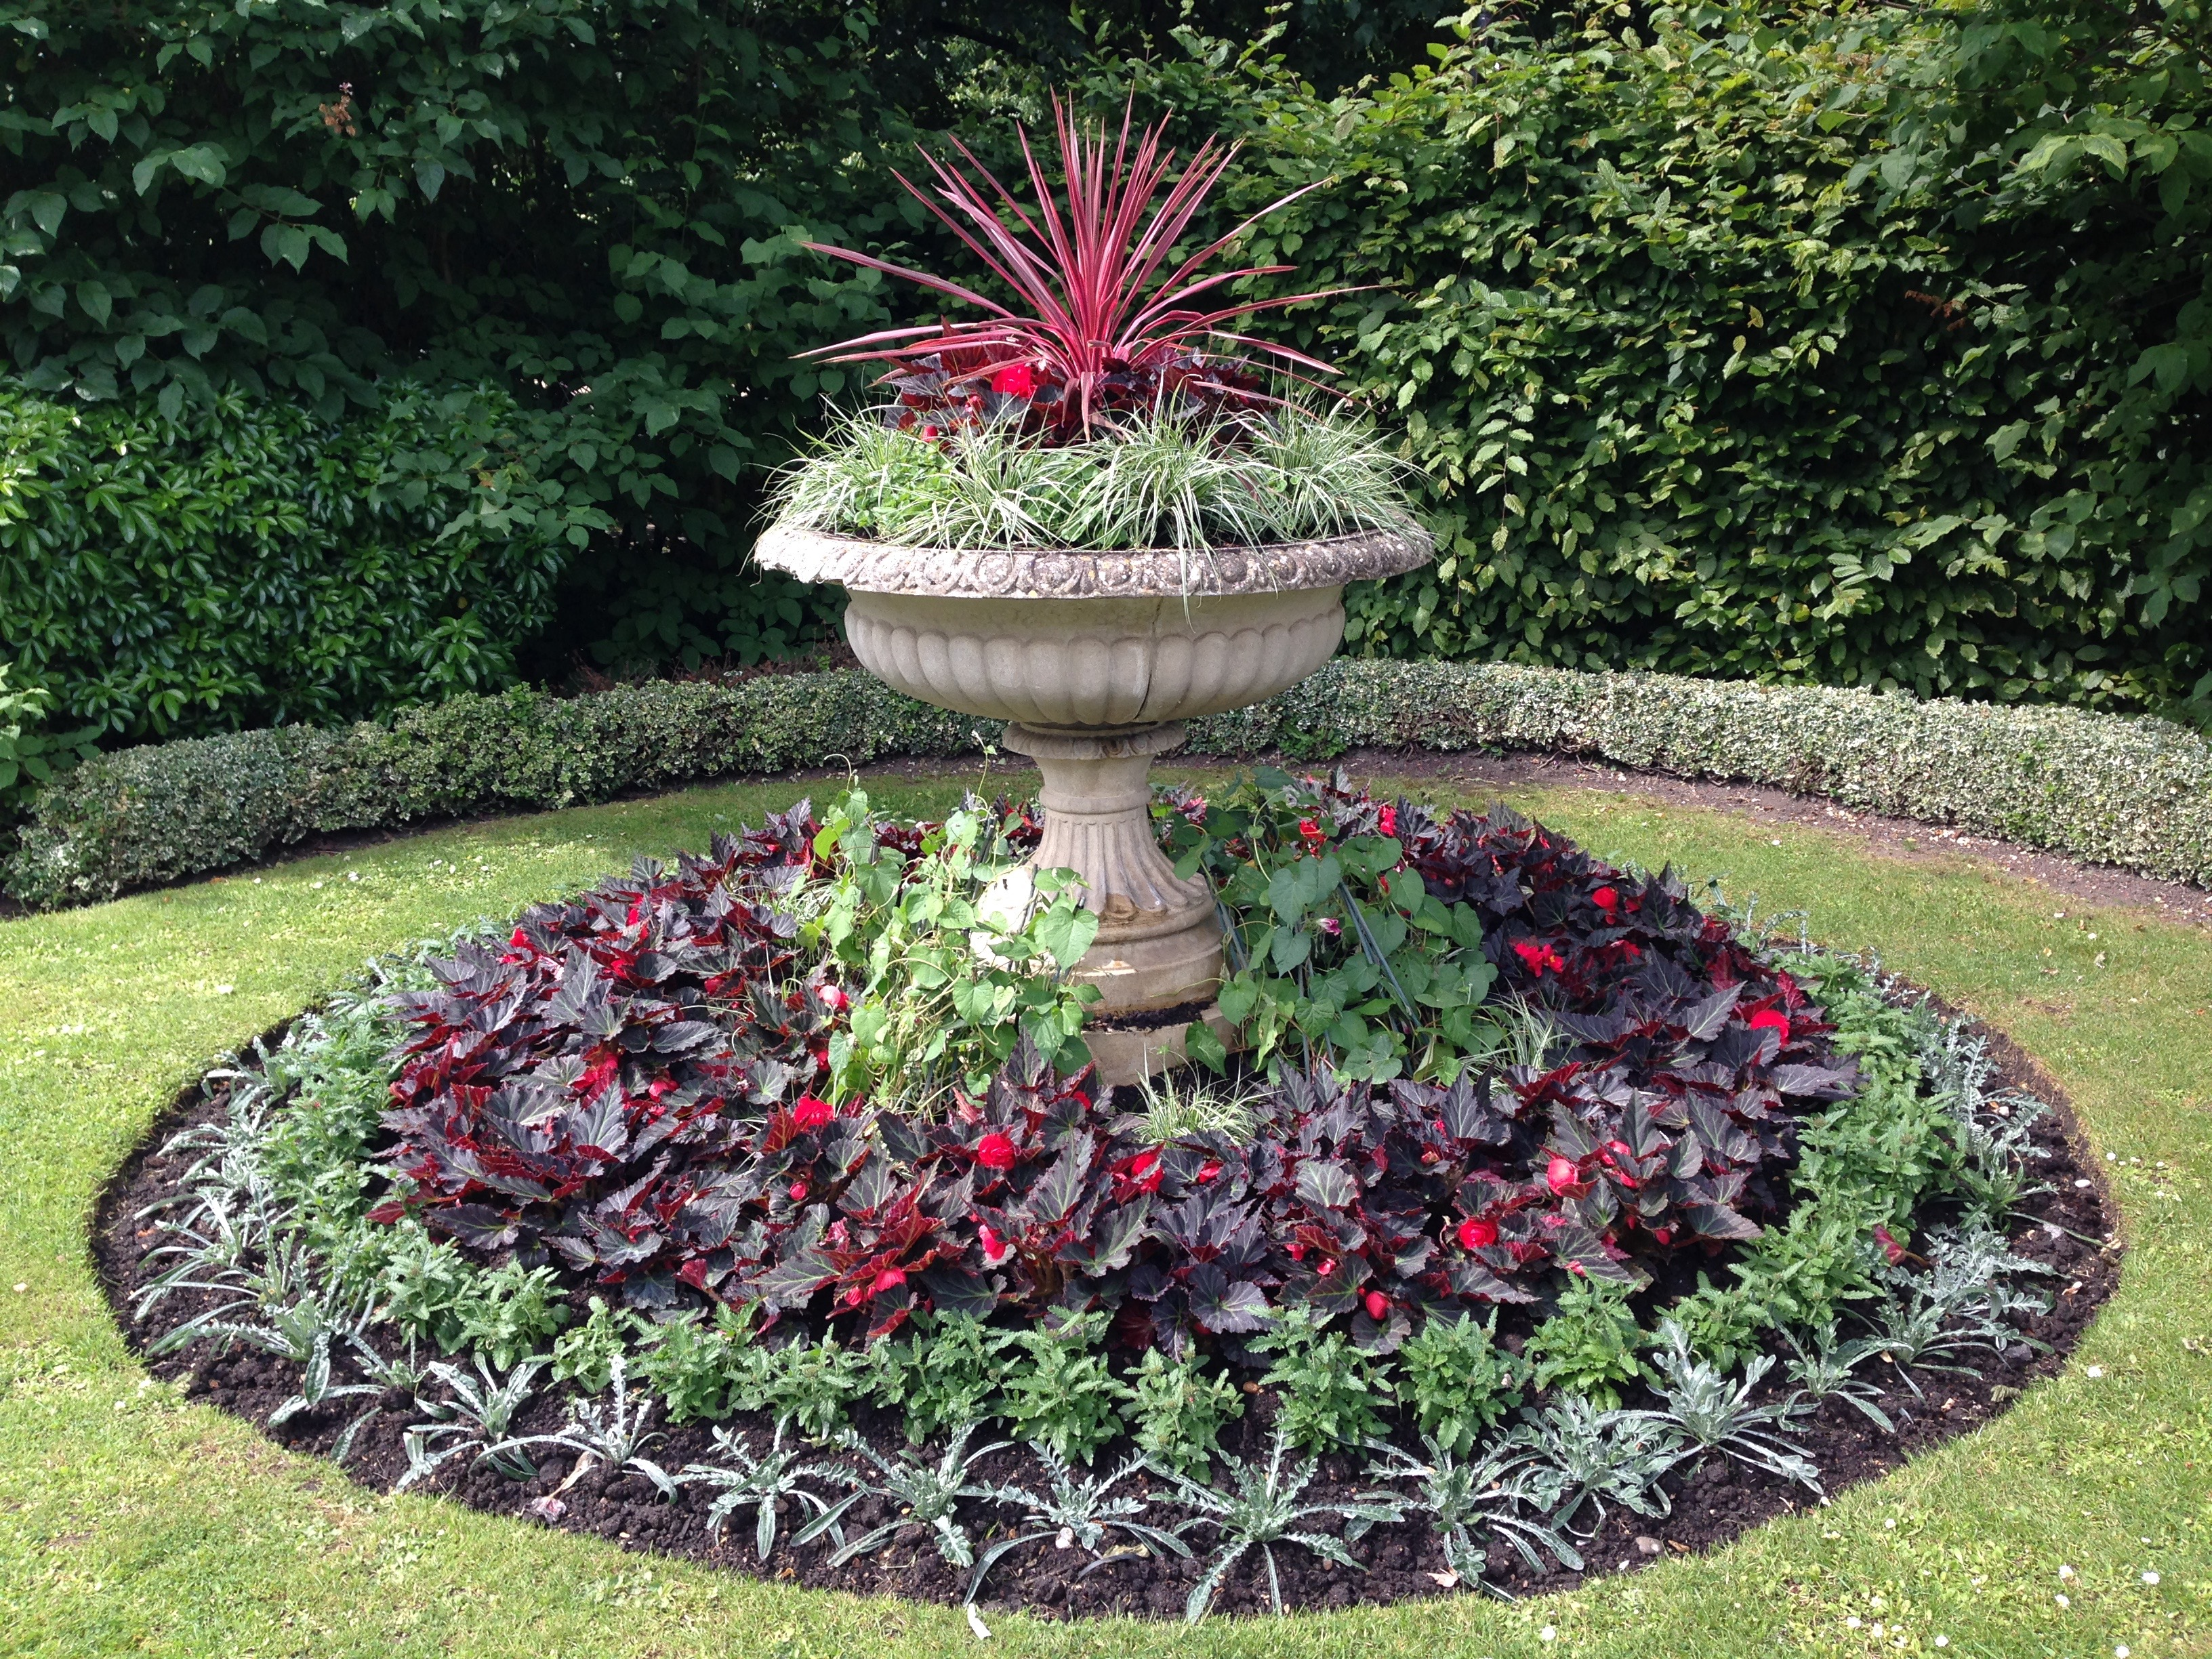 Roses In Garden: A Sense Of Place At Regent's Park